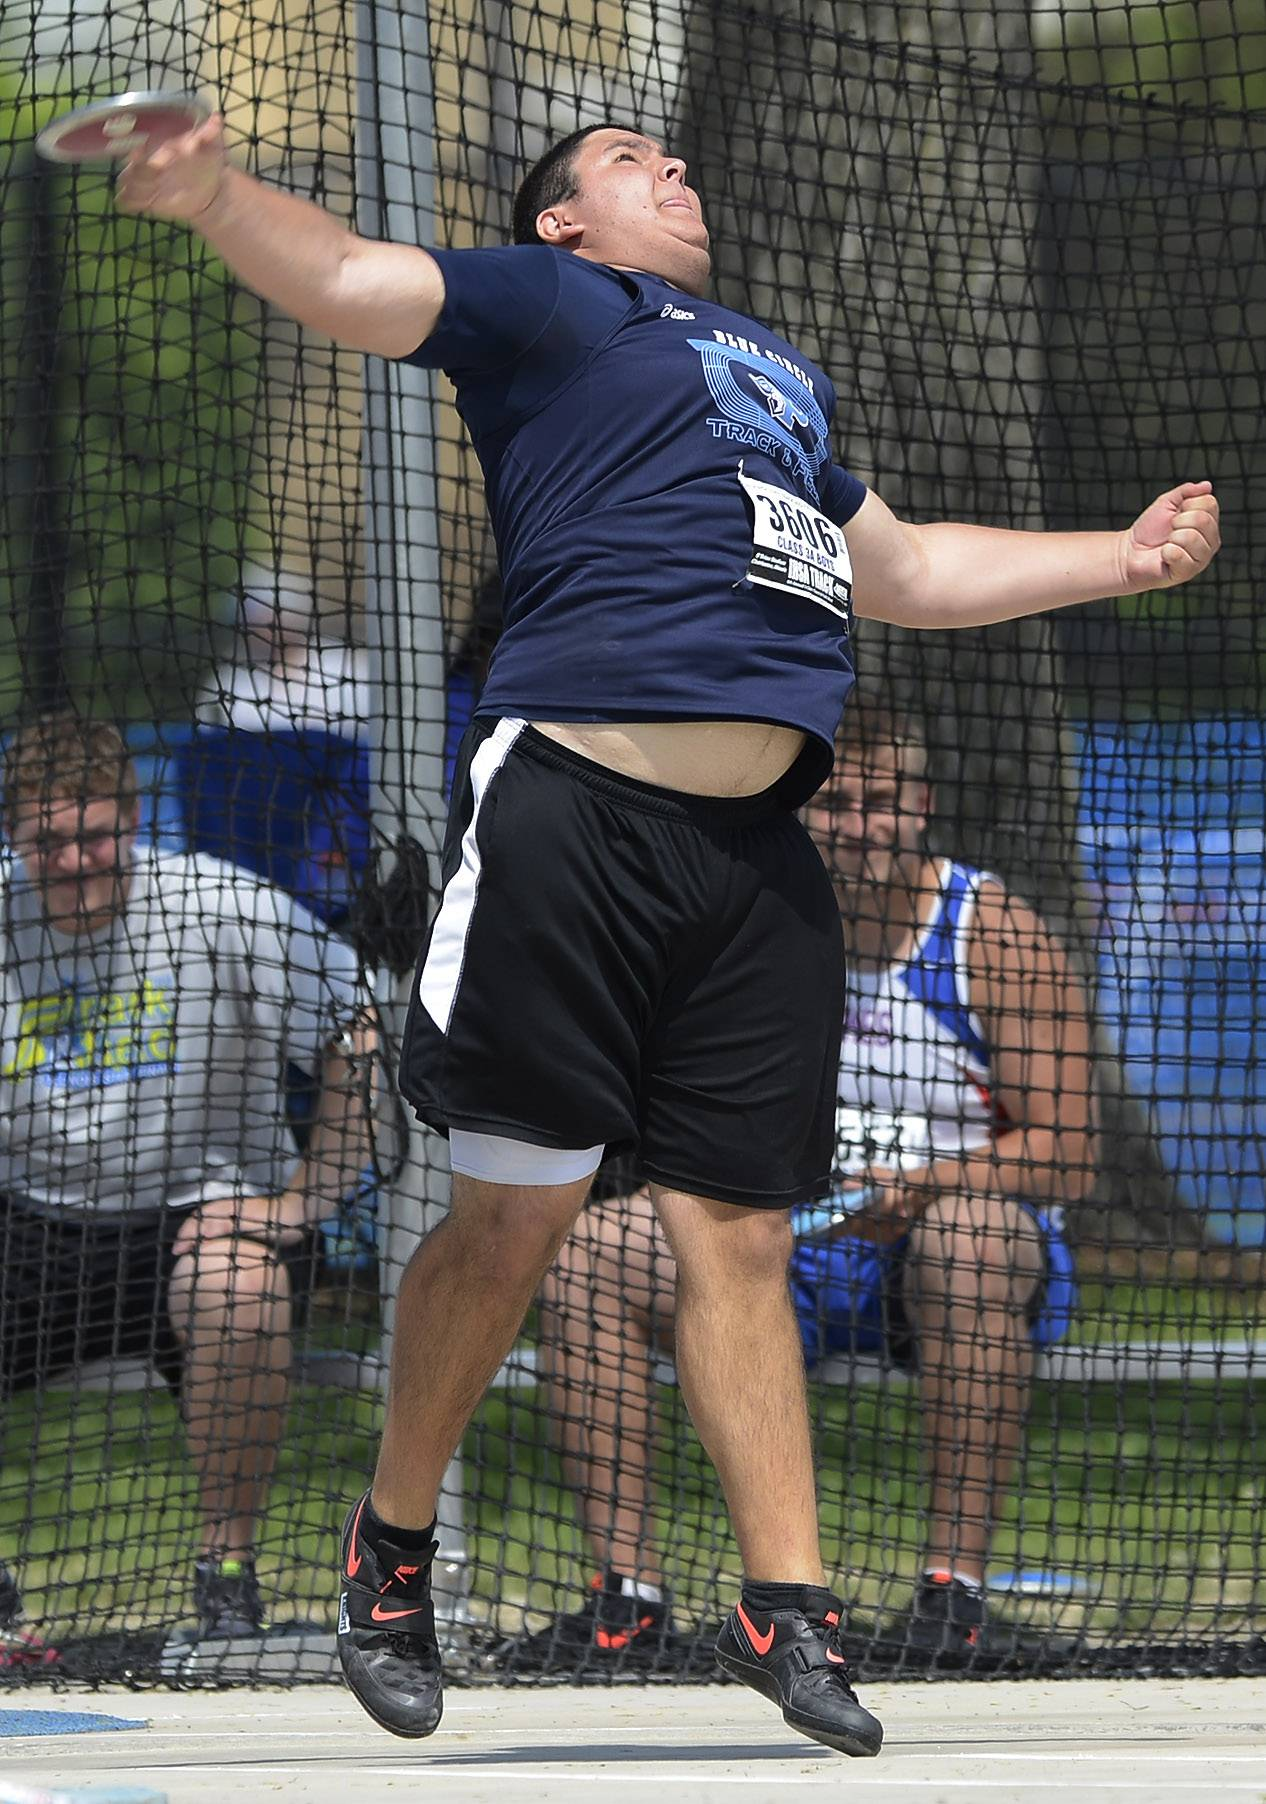 Prospect's Justin Phillips throws while competing in the discus during the boys Class 3A state track and field preliminaries in Charleston Friday.